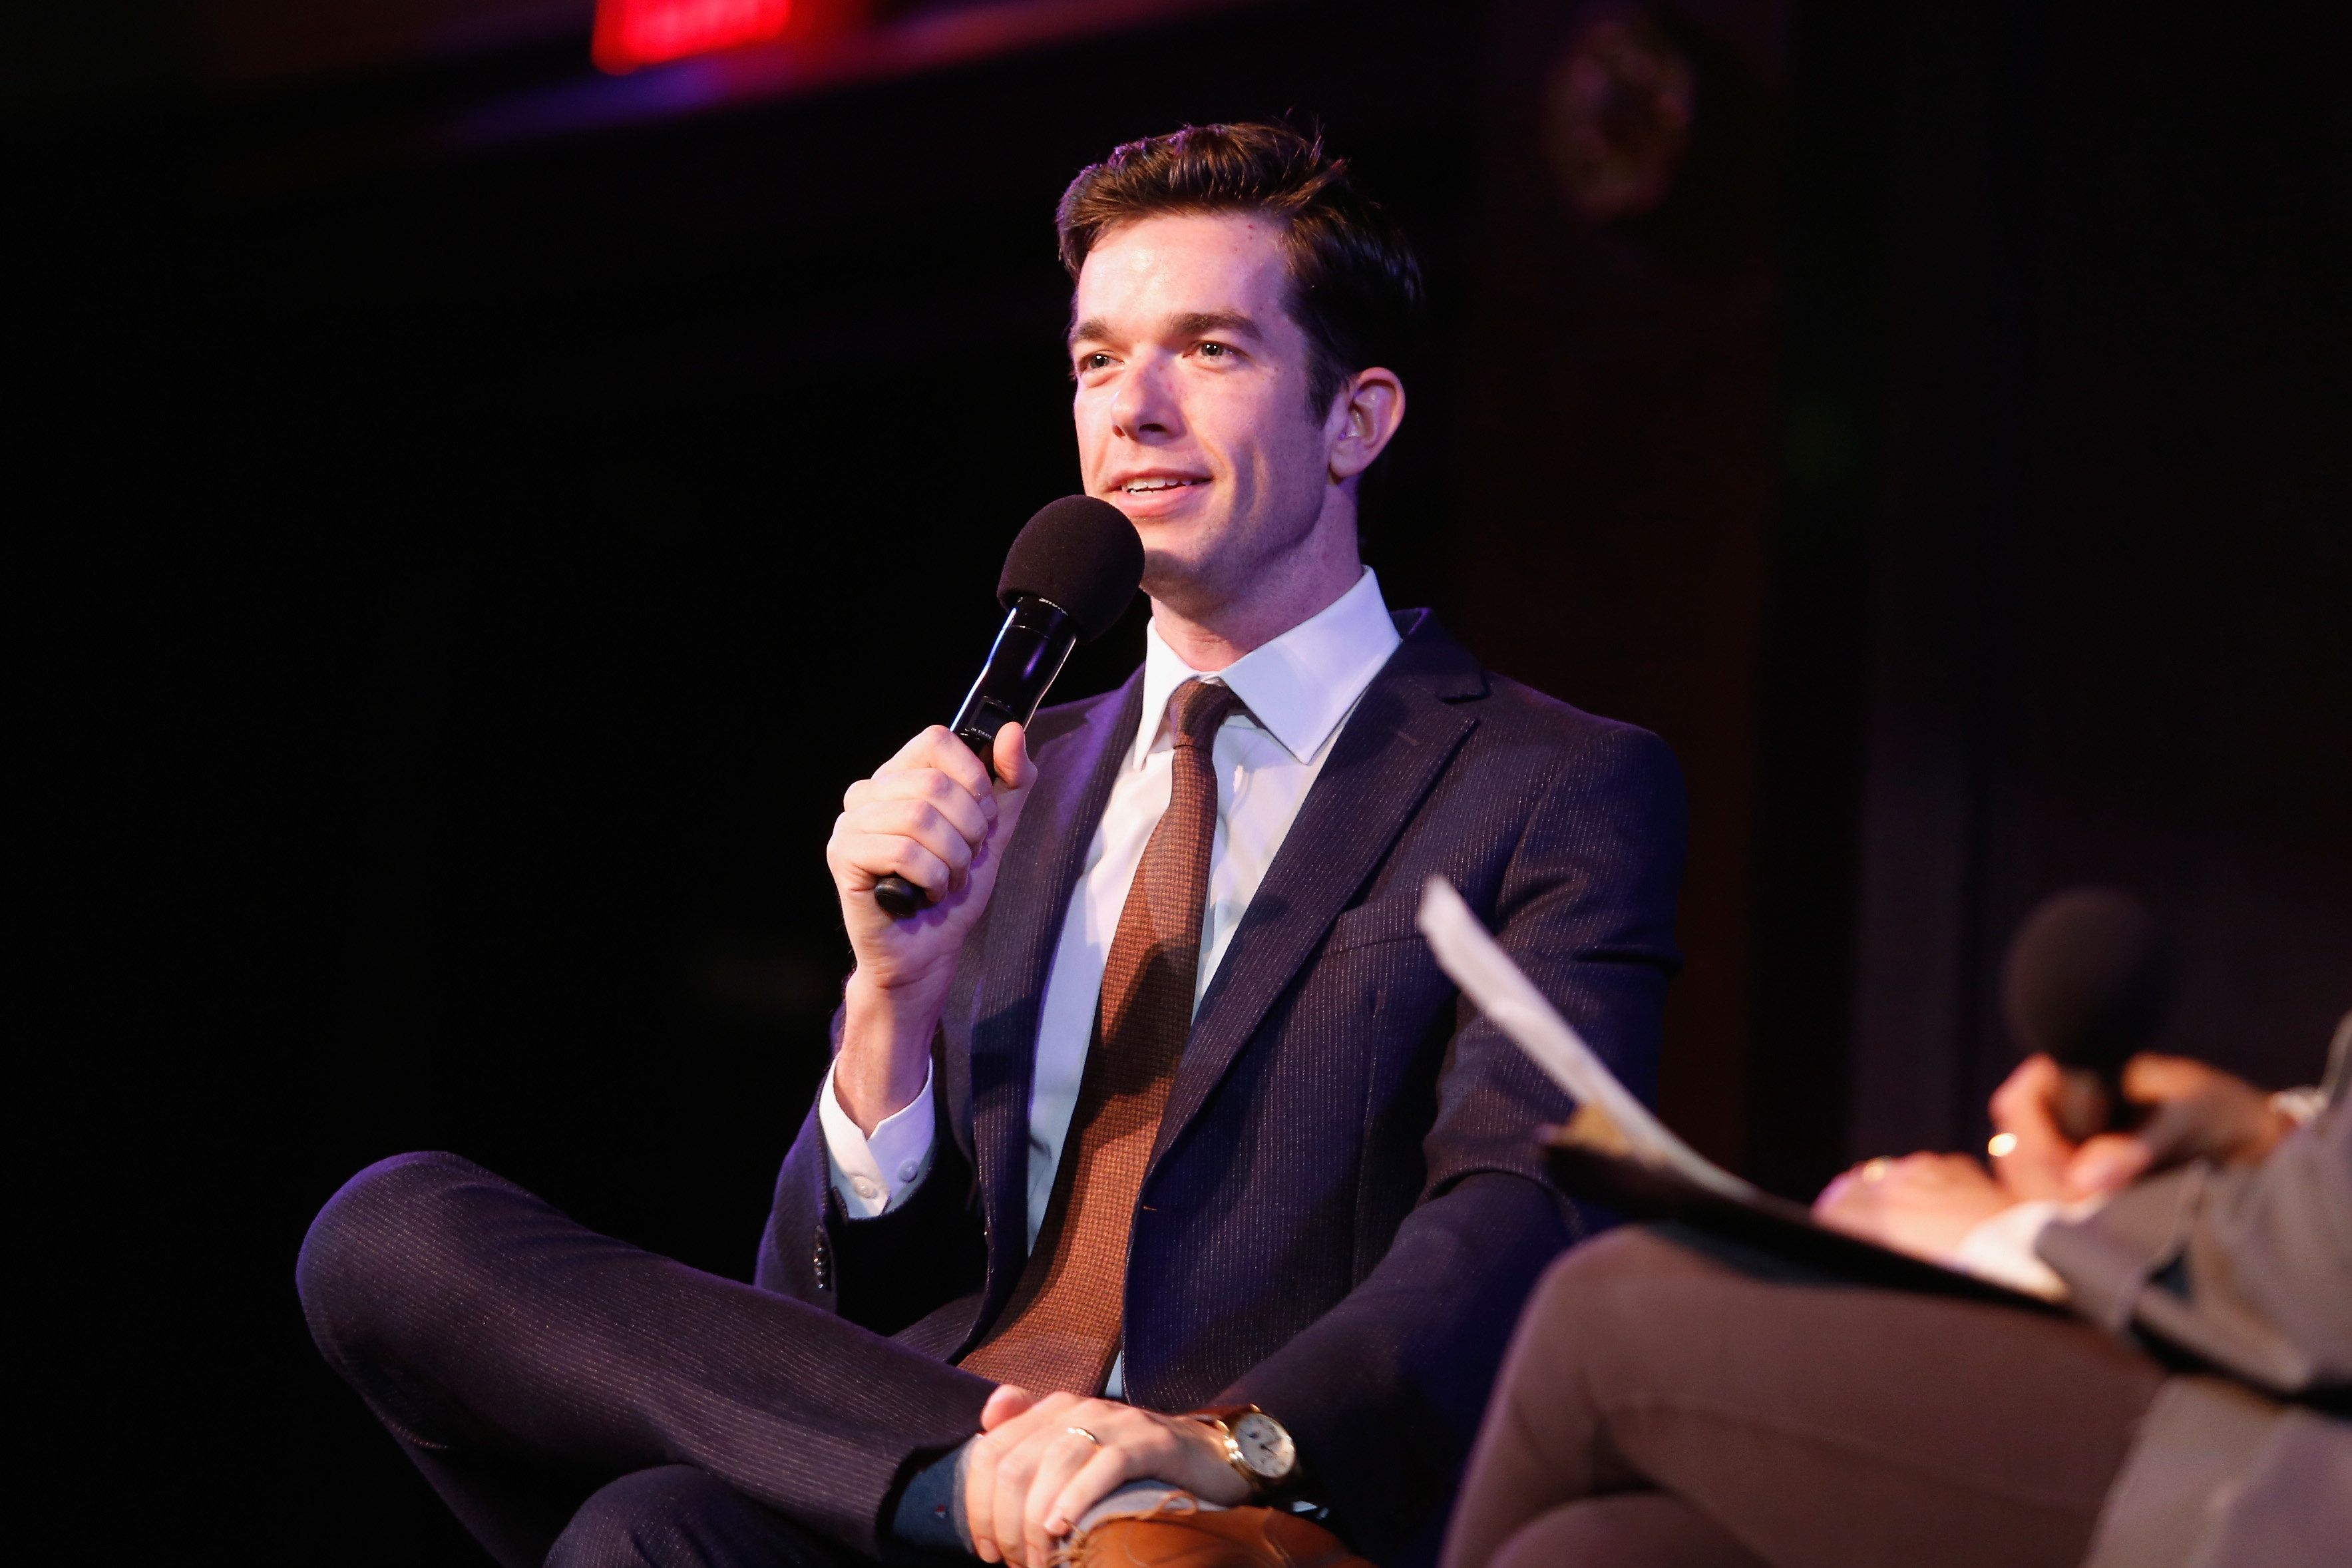 NEW YORK, NY - OCTOBER 06:  John Mulaney speaks on stage during the 2018 New Yorker Festival on October 6, 2018 in New York City.  (Photo by Thos Robinson/Getty Images for The New Yorker)